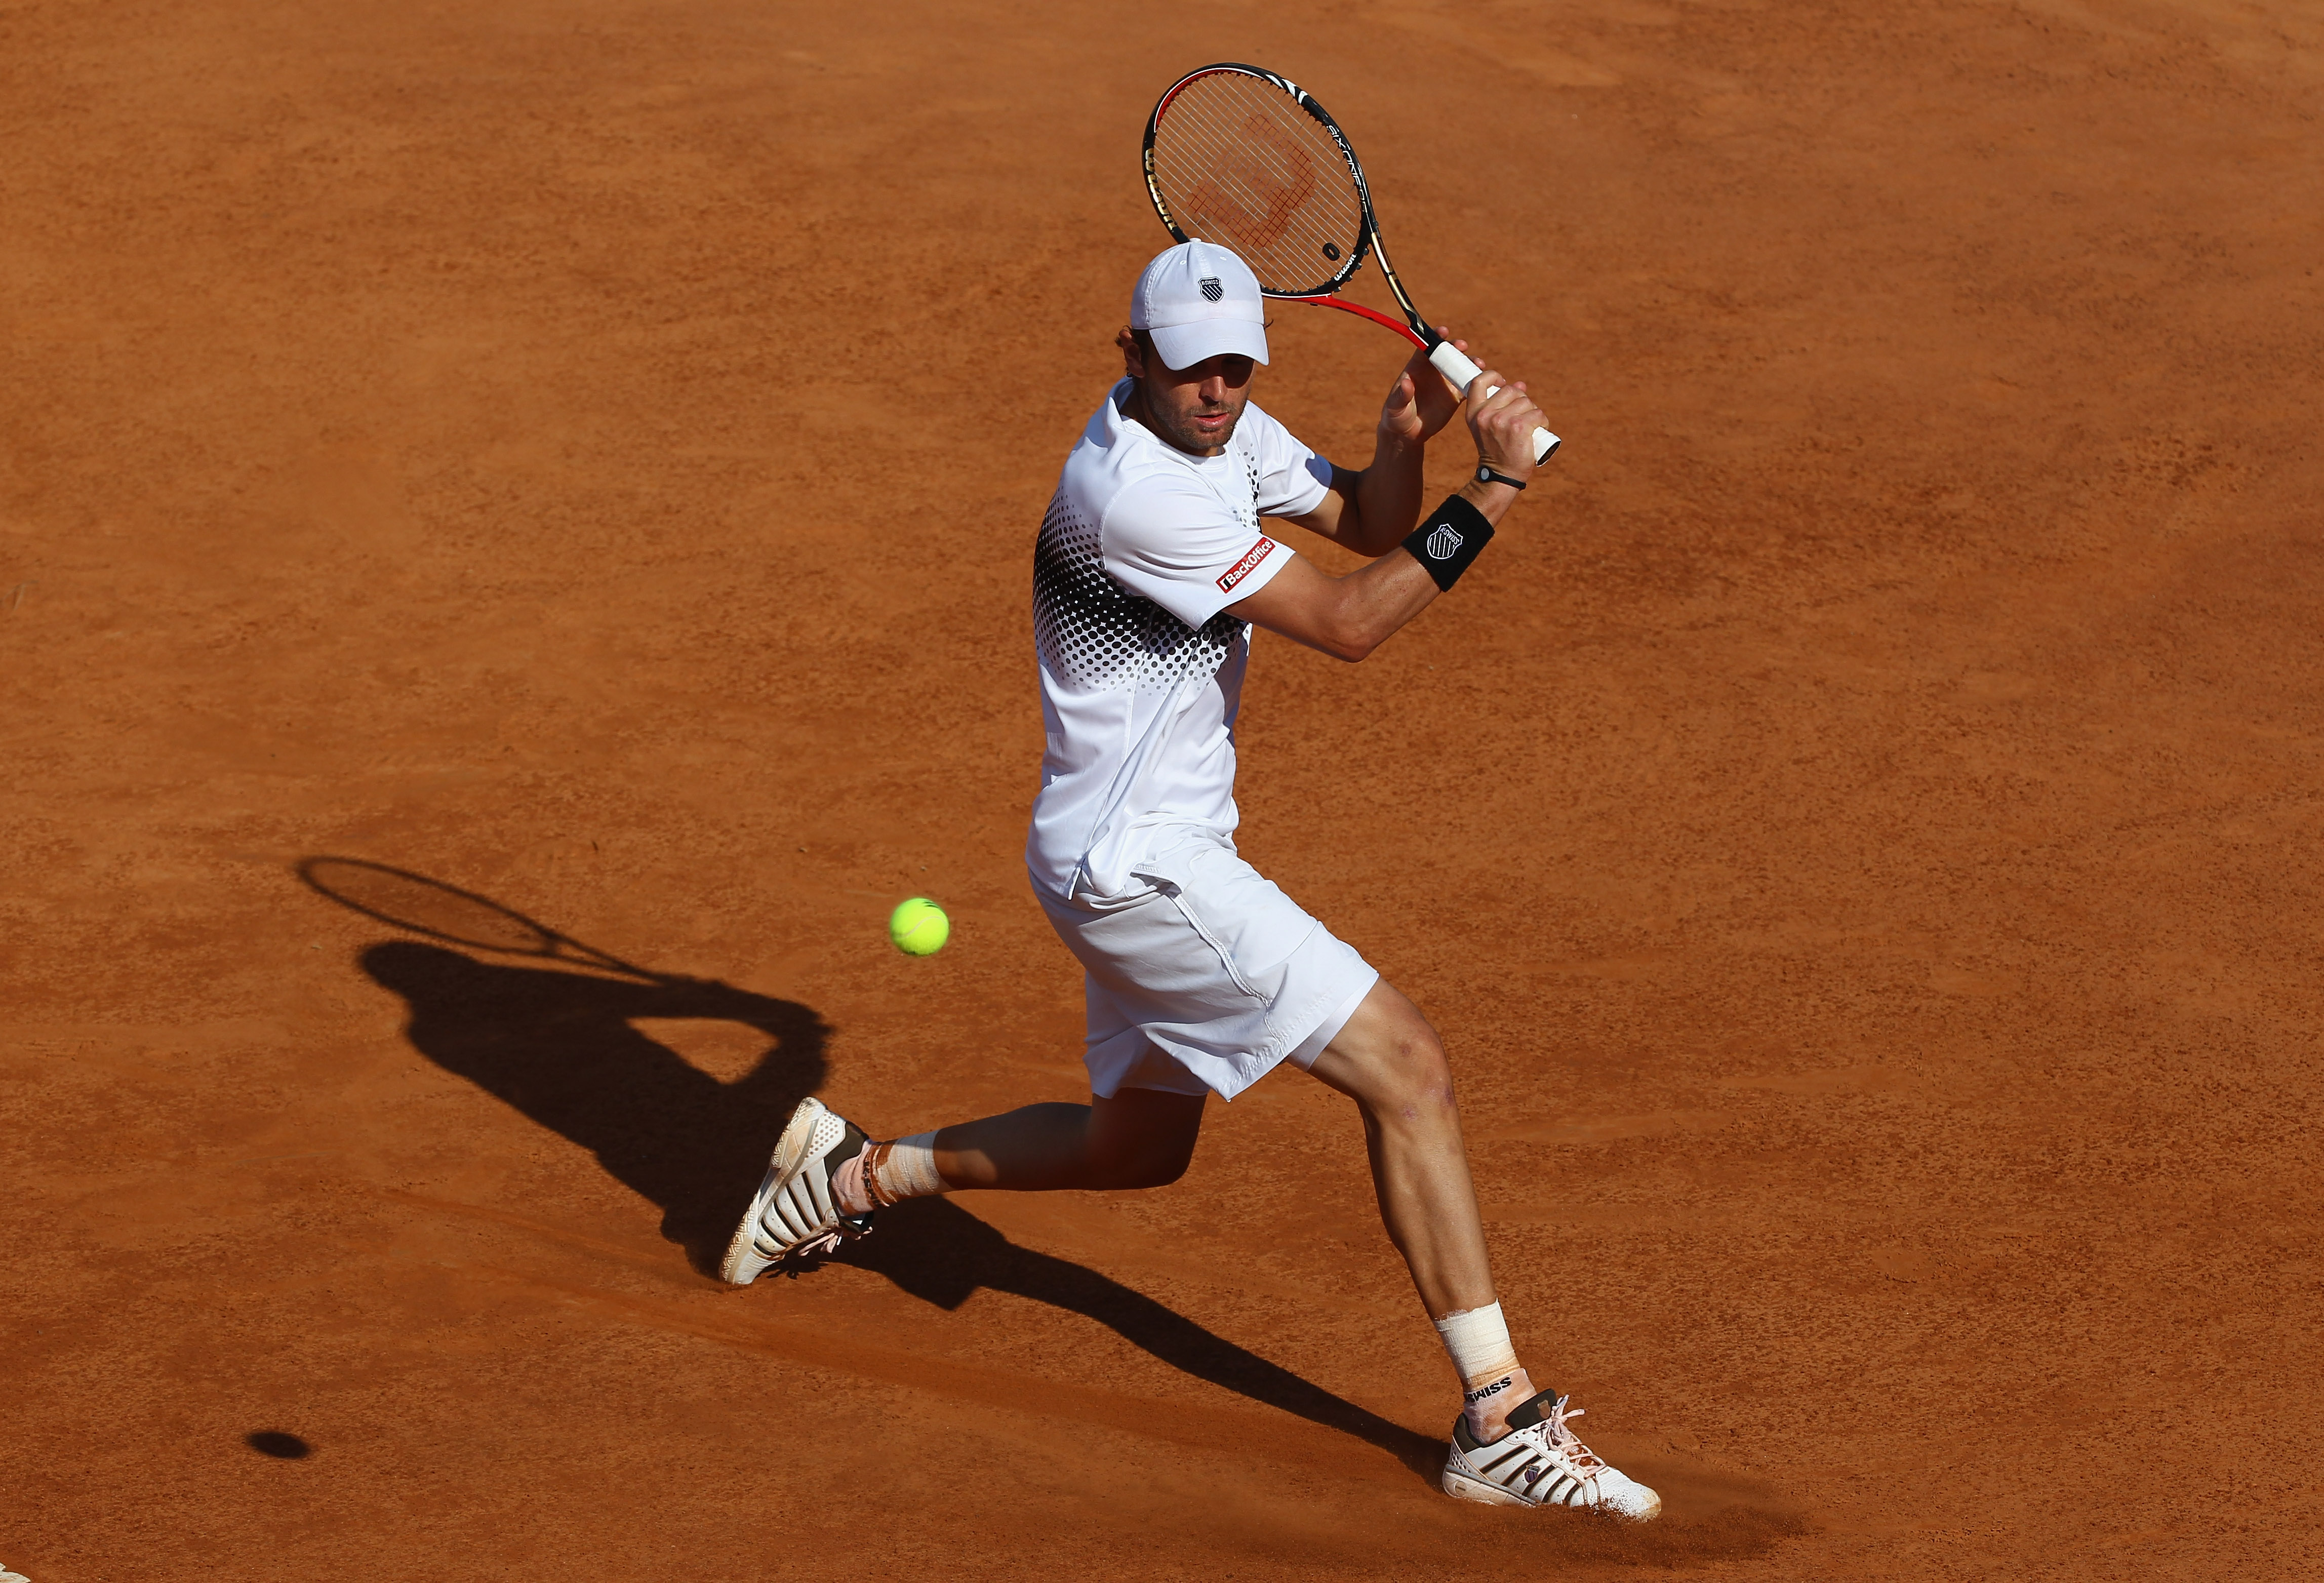 ROME, ITALY - MAY 09:  Mardy Fish of the USA plays a backhand during his first round match against Santiago Giraldo of Columbia during day two of the Internazoinali BNL D'Italia at the Foro Italico Tennis Centre on May 9, 2011 in Rome, Italy.  (Photo by C